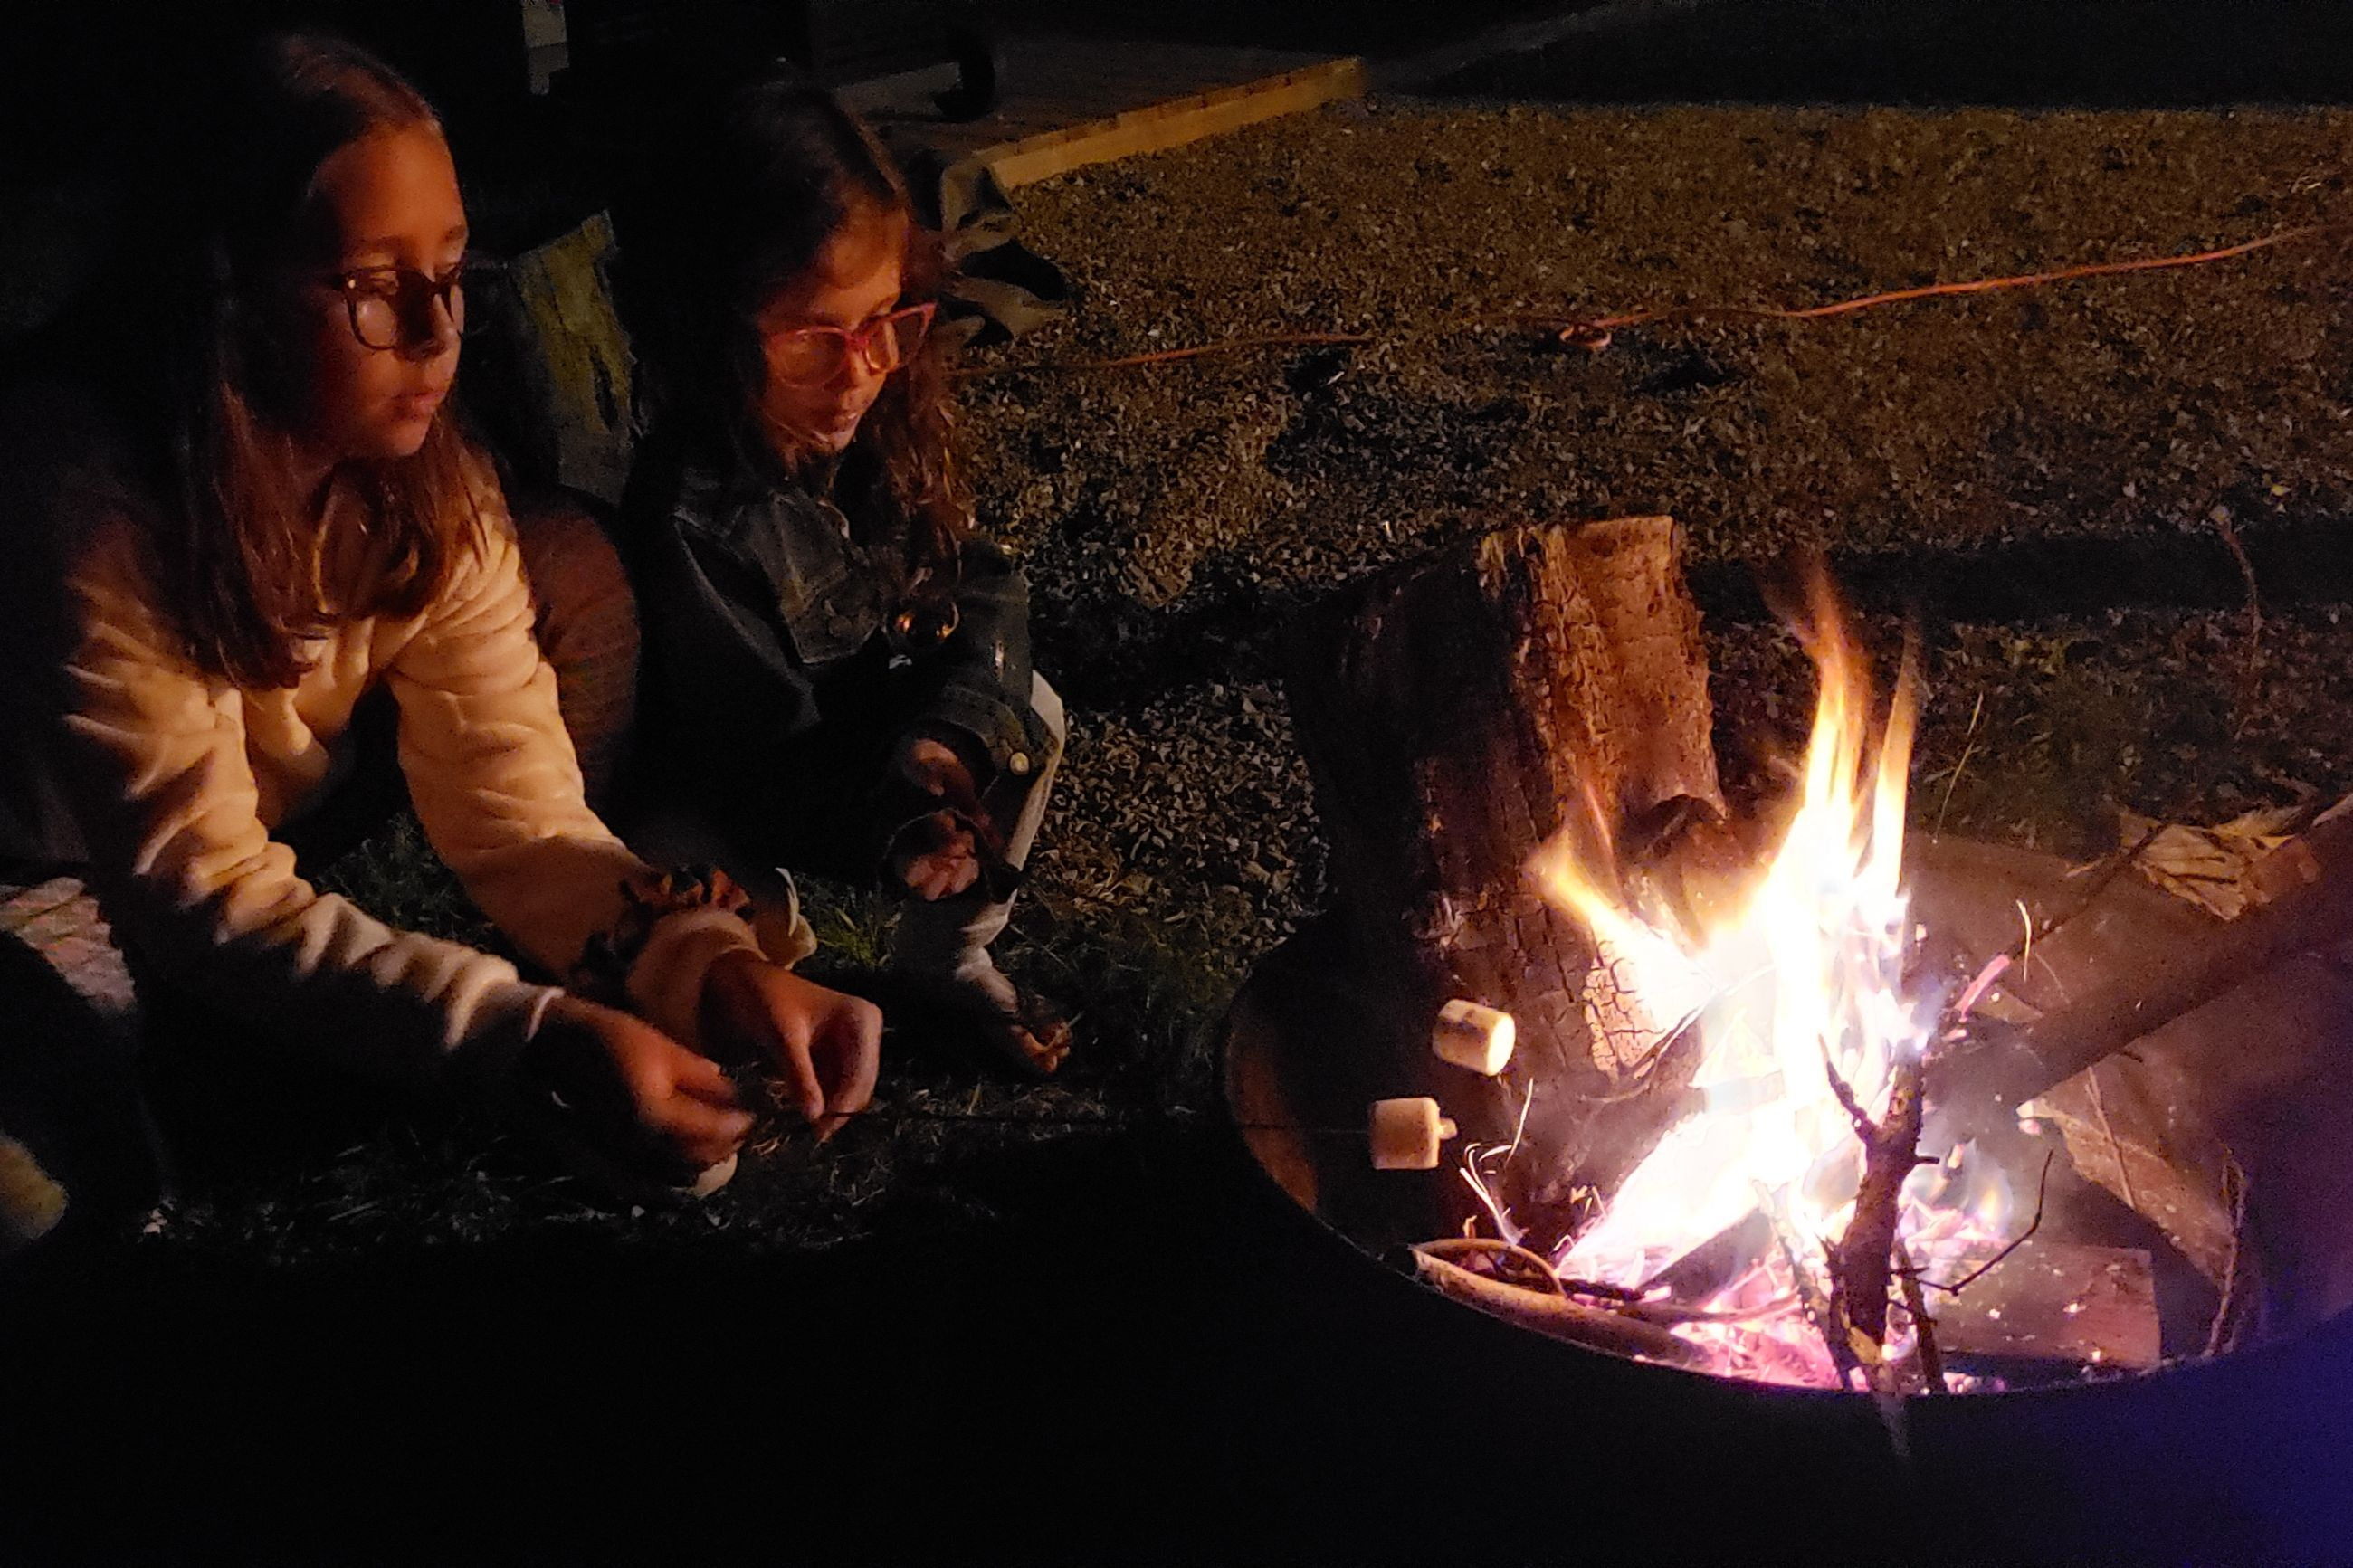 burning, fire, fire - natural phenomenon, flame, heat - temperature, real people, people, lifestyles, night, bonfire, leisure activity, glowing, two people, nature, campfire, togetherness, bonding, wood - material, log, fireplace, wood, preparing food